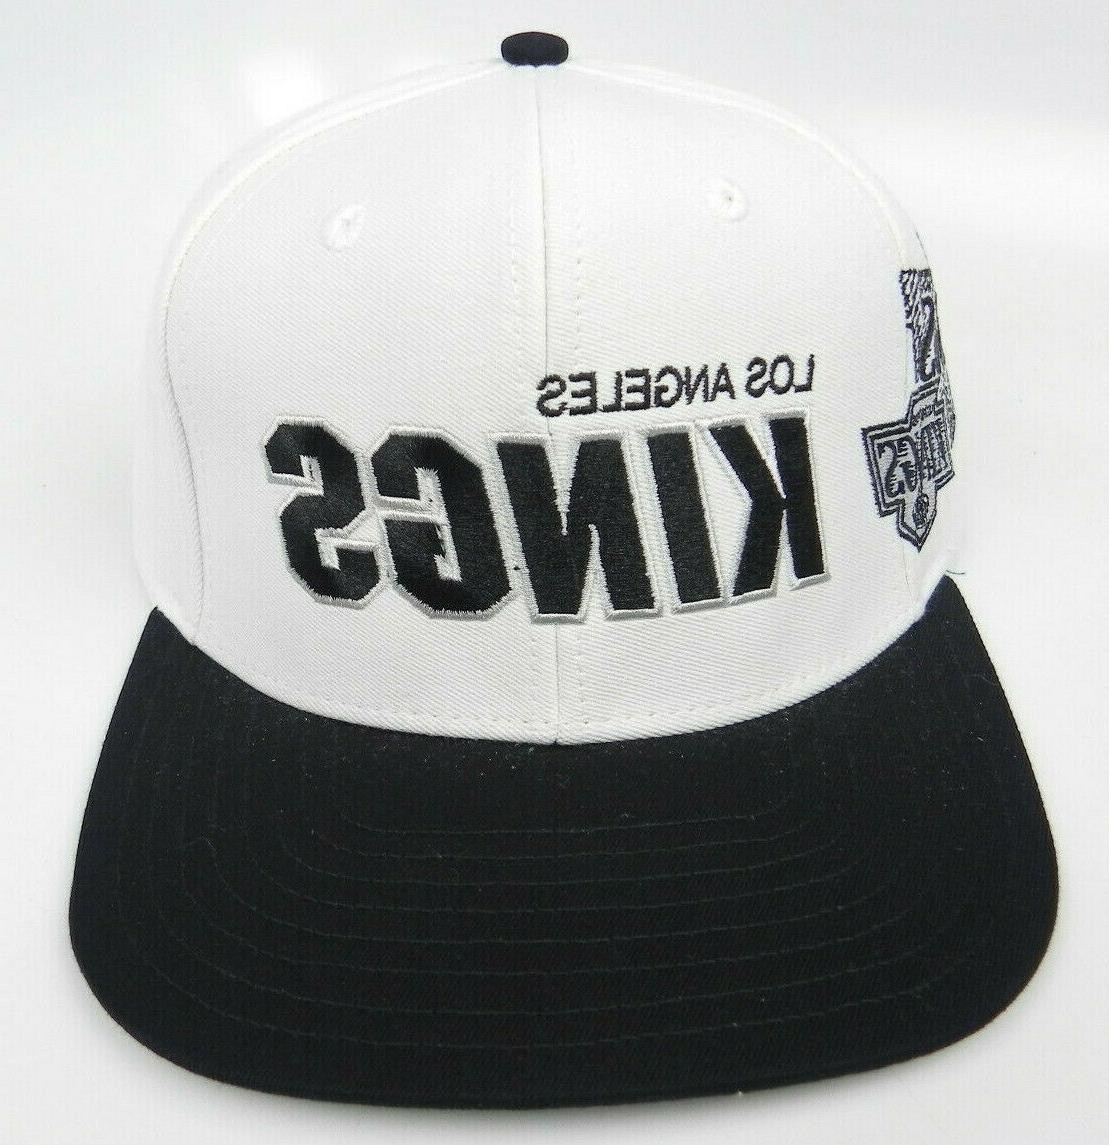 los angeles kings nhl snapback retro shadow